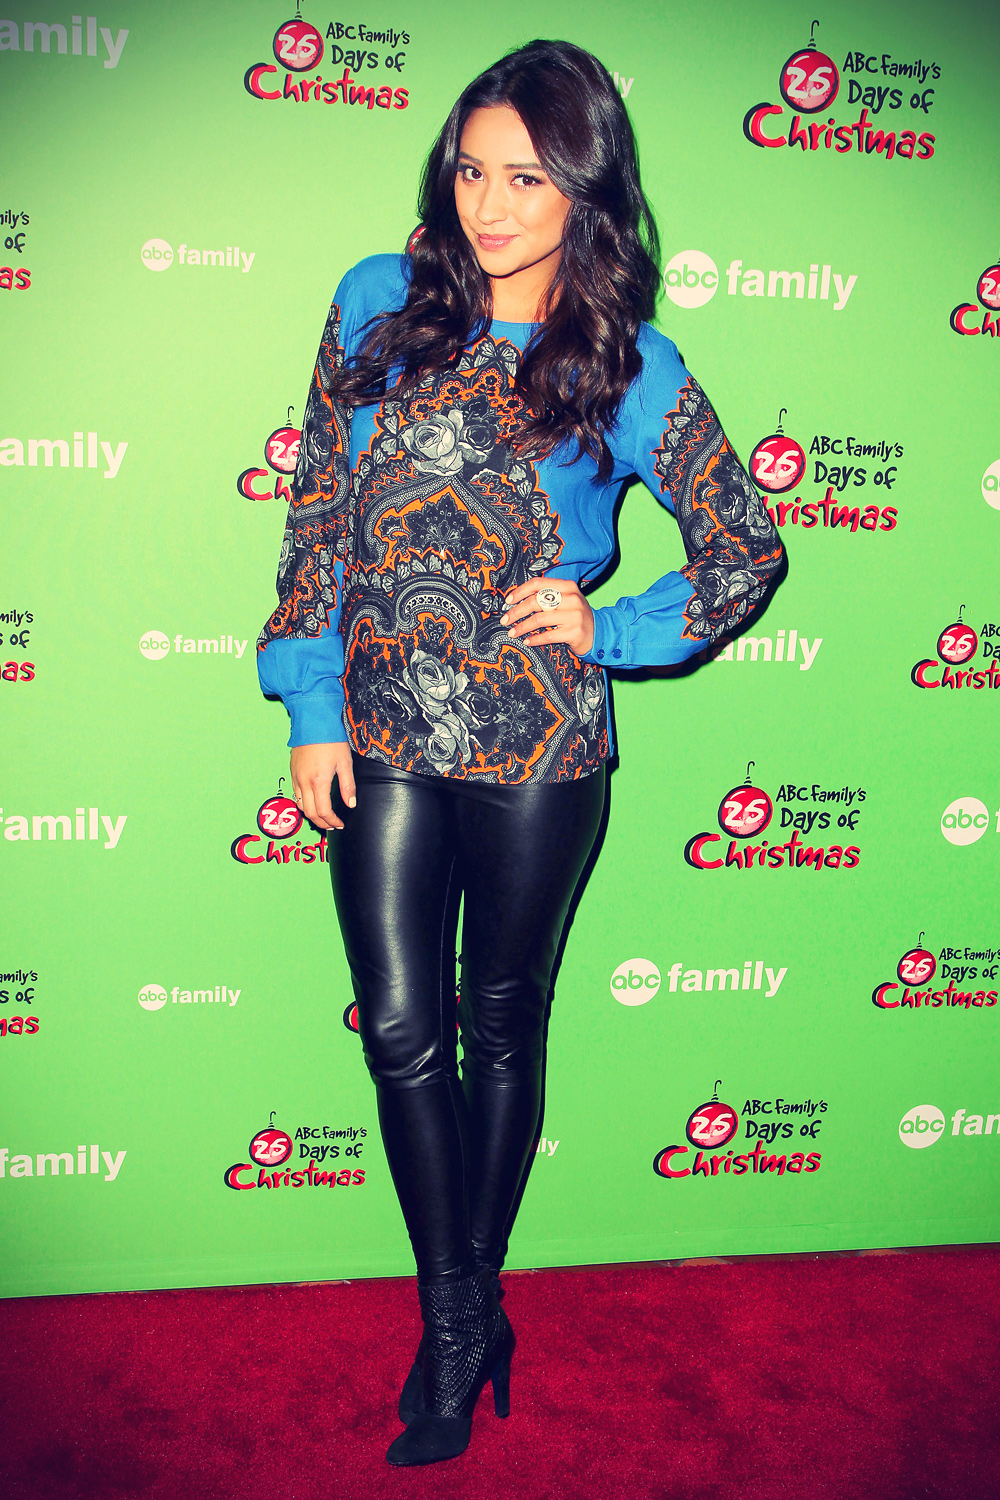 Shay Mitchell attends ABC Family's 25 Days Of Christmas